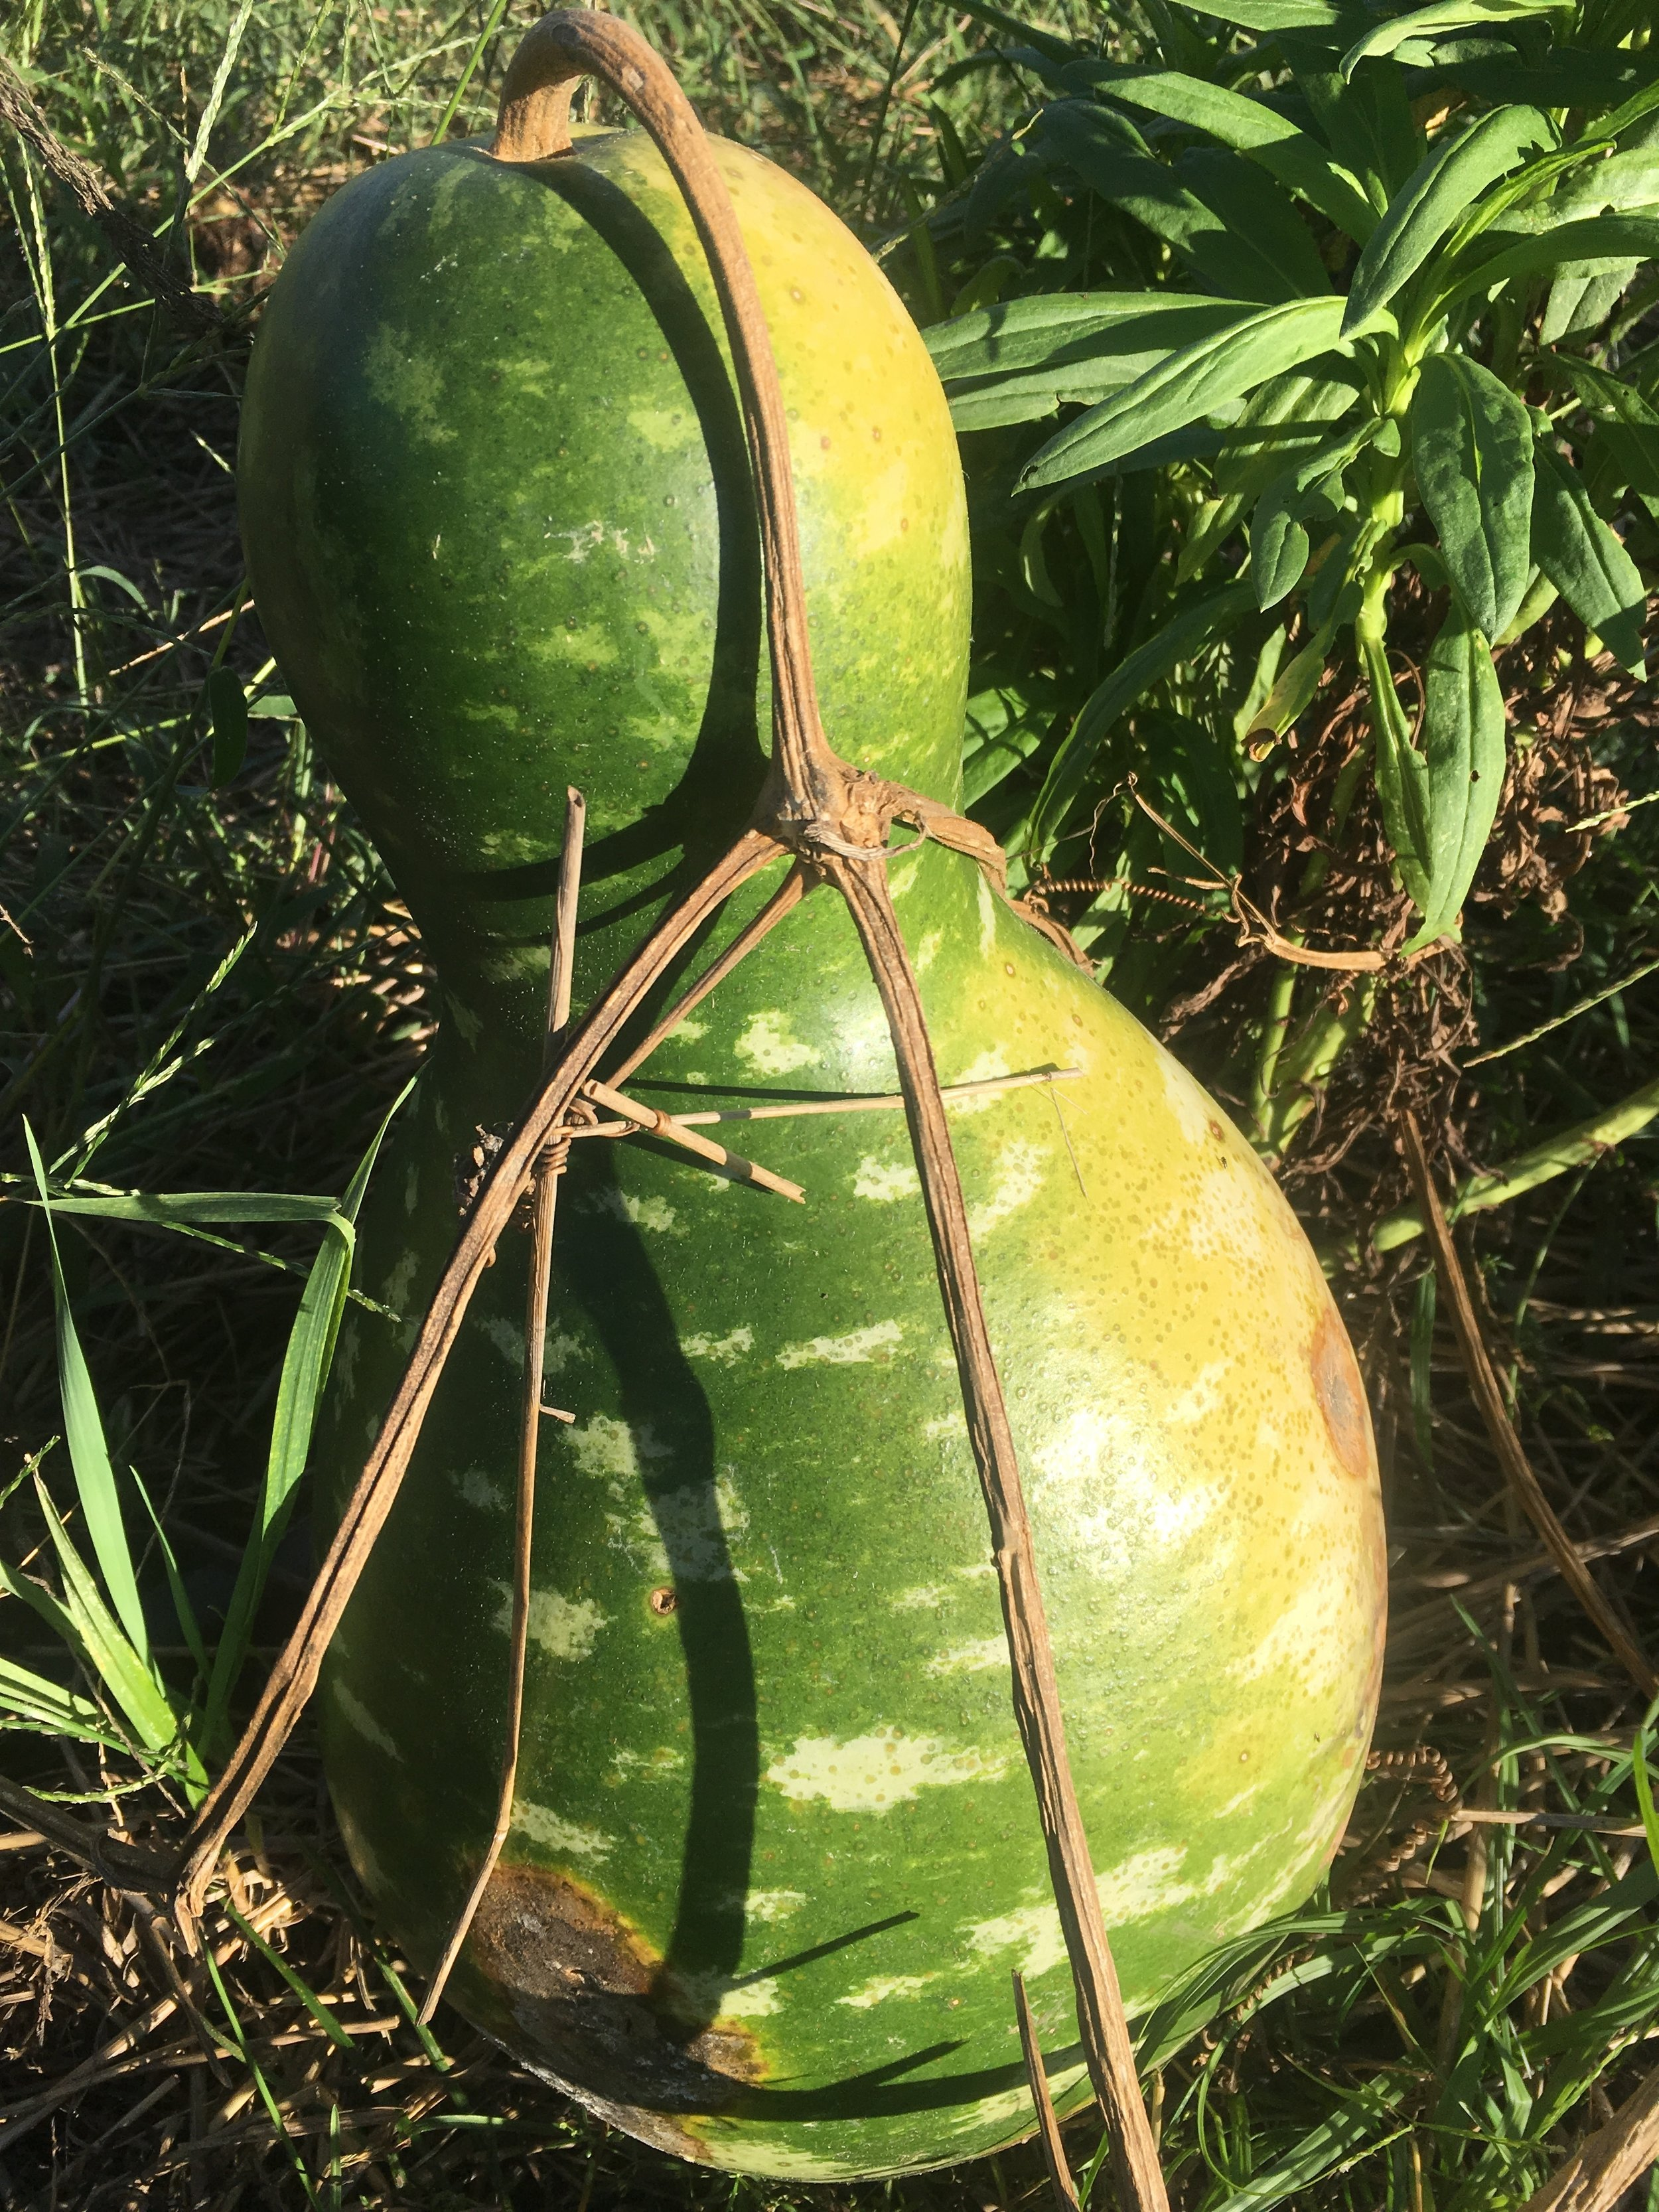 We had this water gourd show up so that is pretty cool….